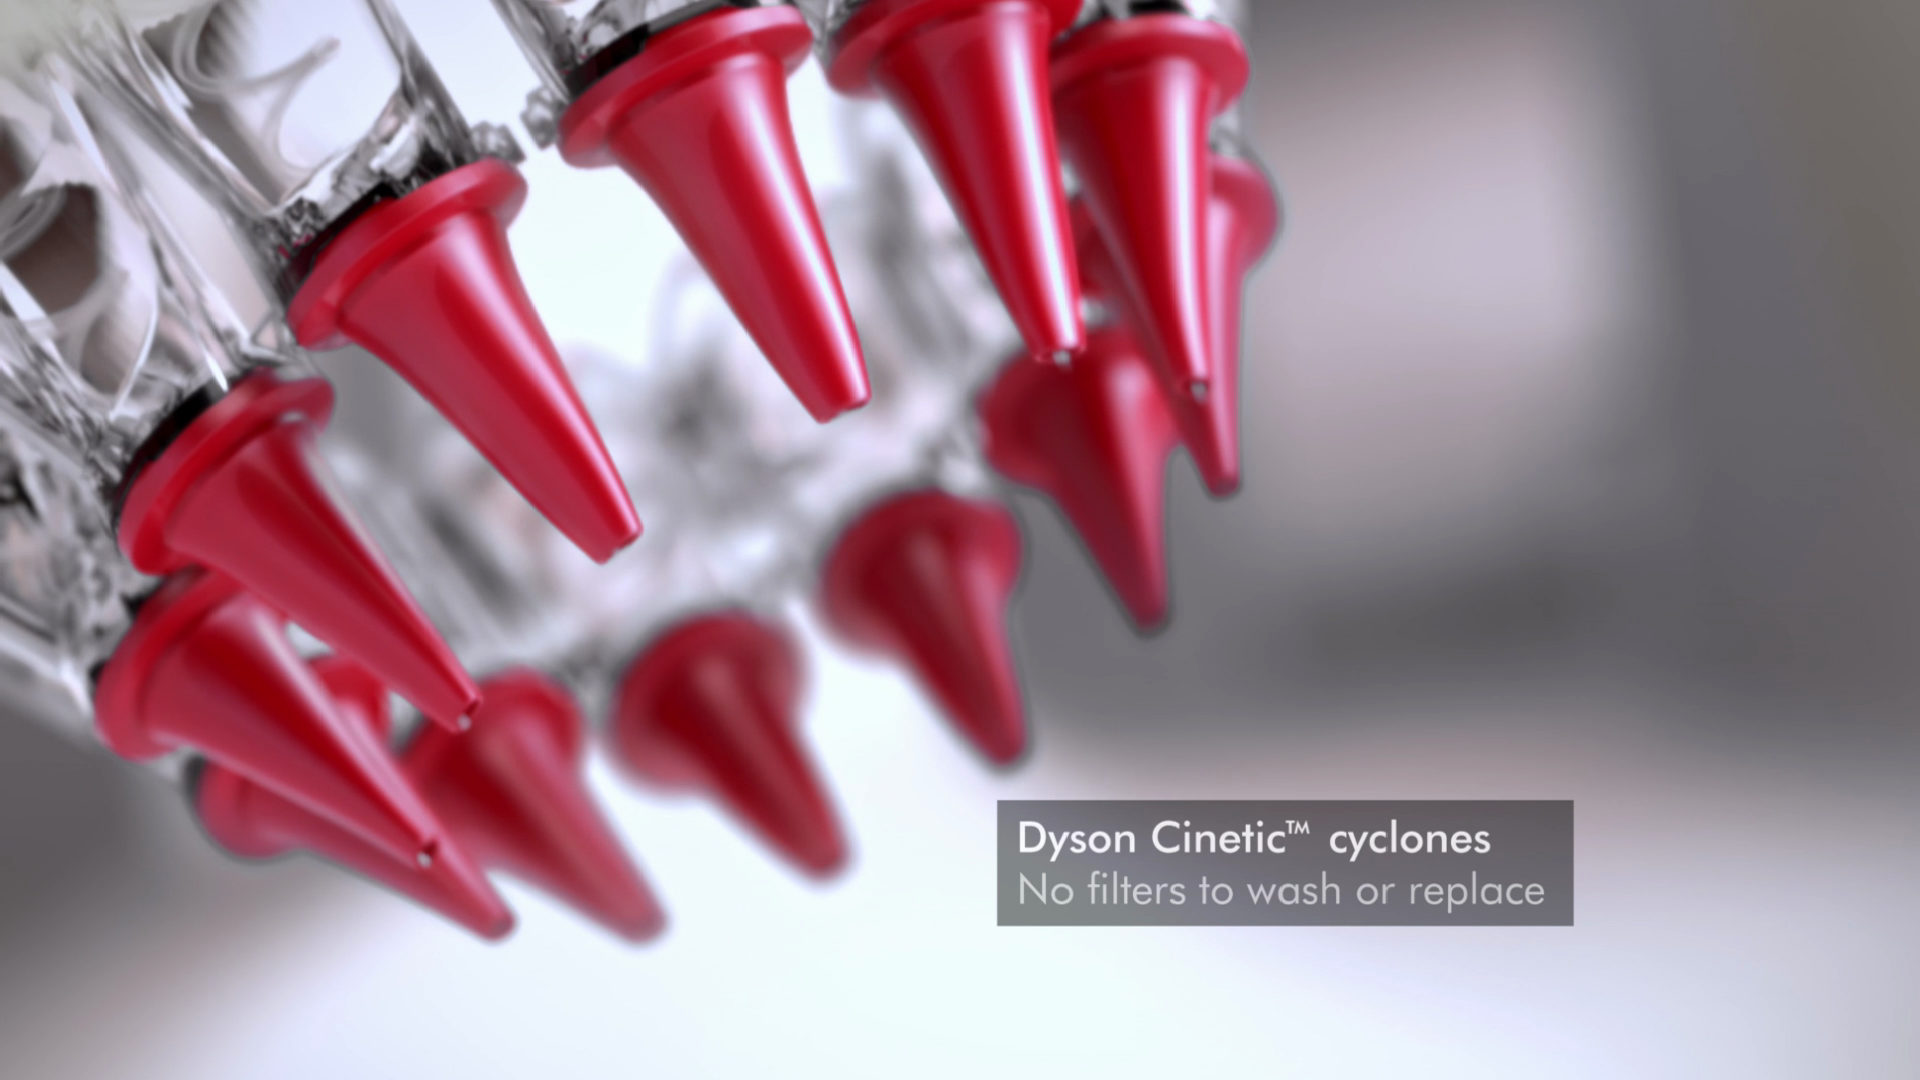 Cinetic cyclone tips